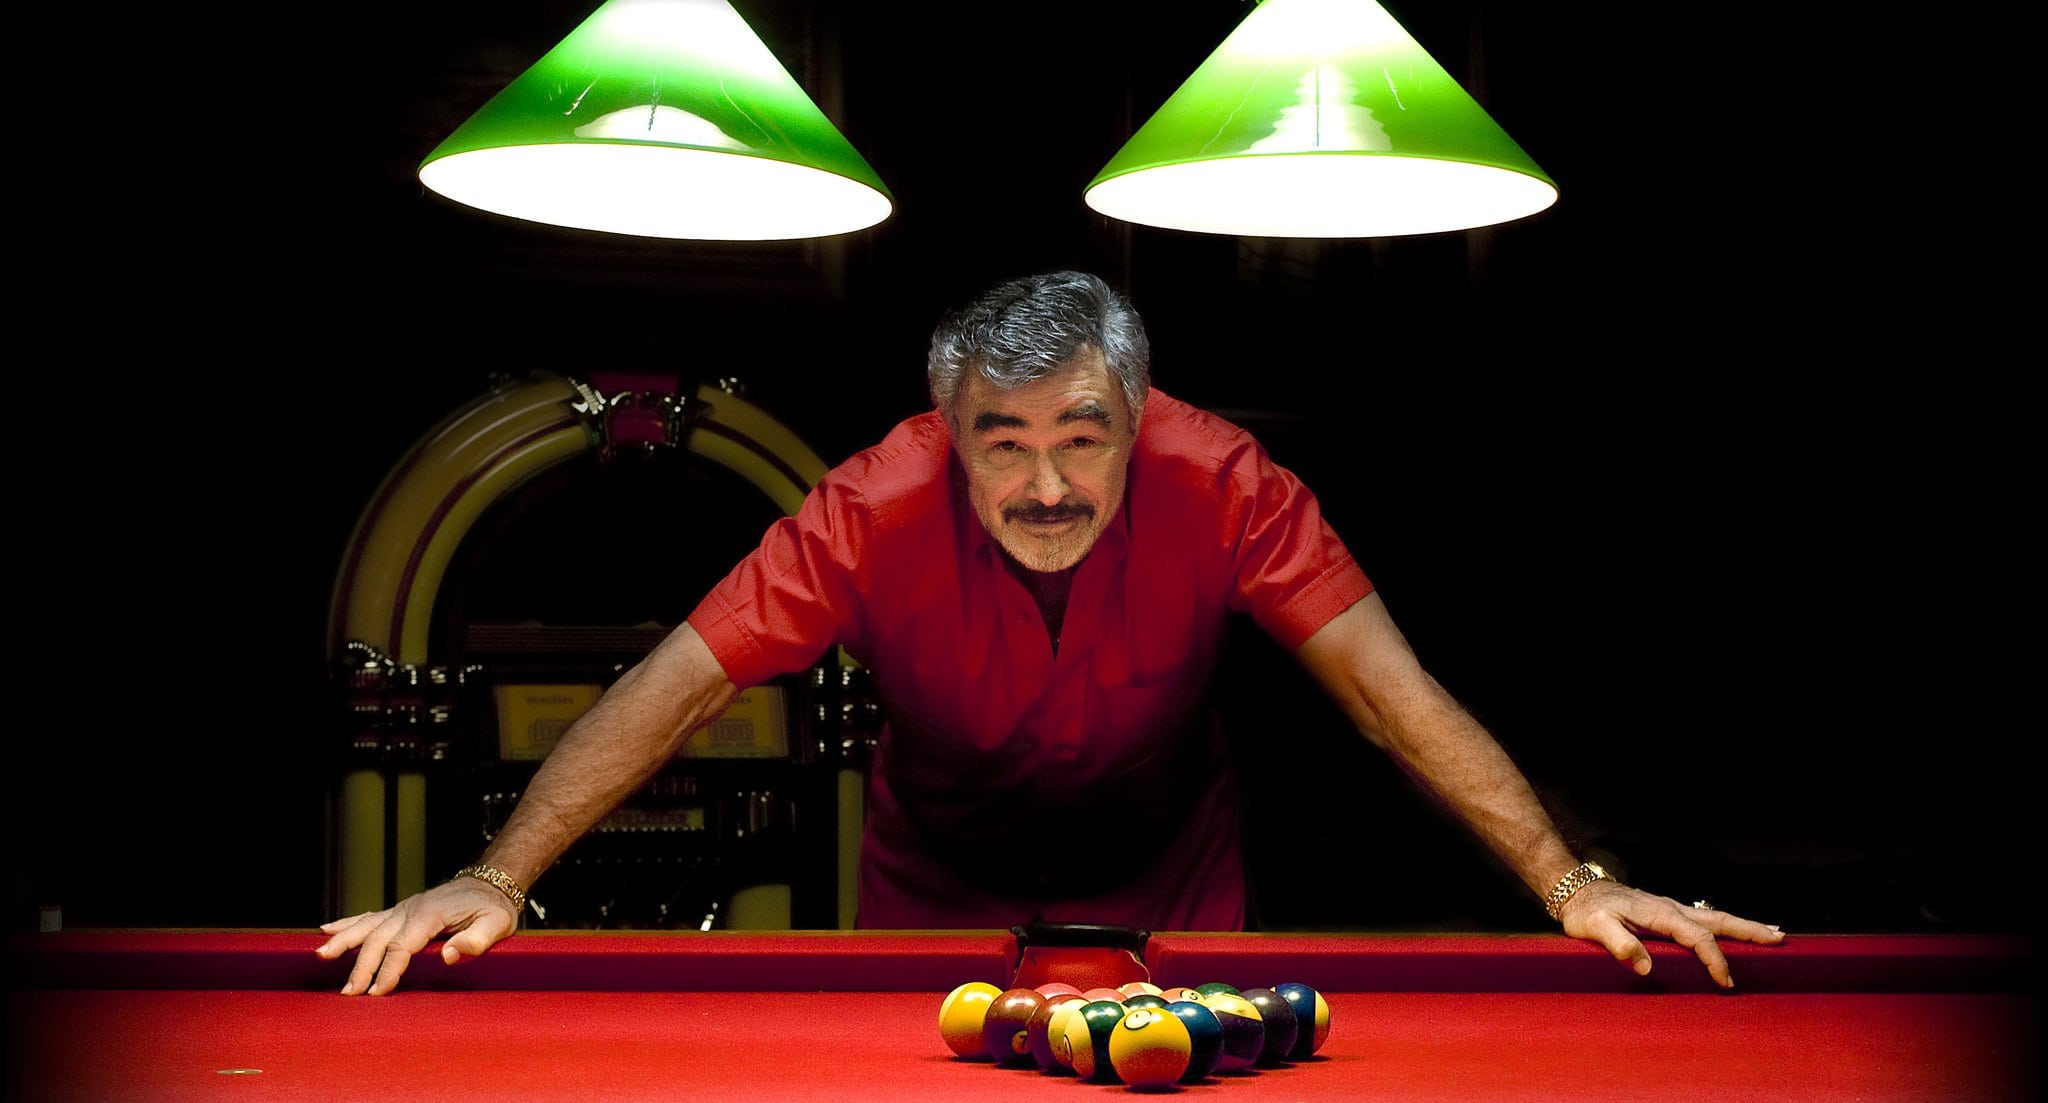 Burt Reynolds Widescreen for desktop